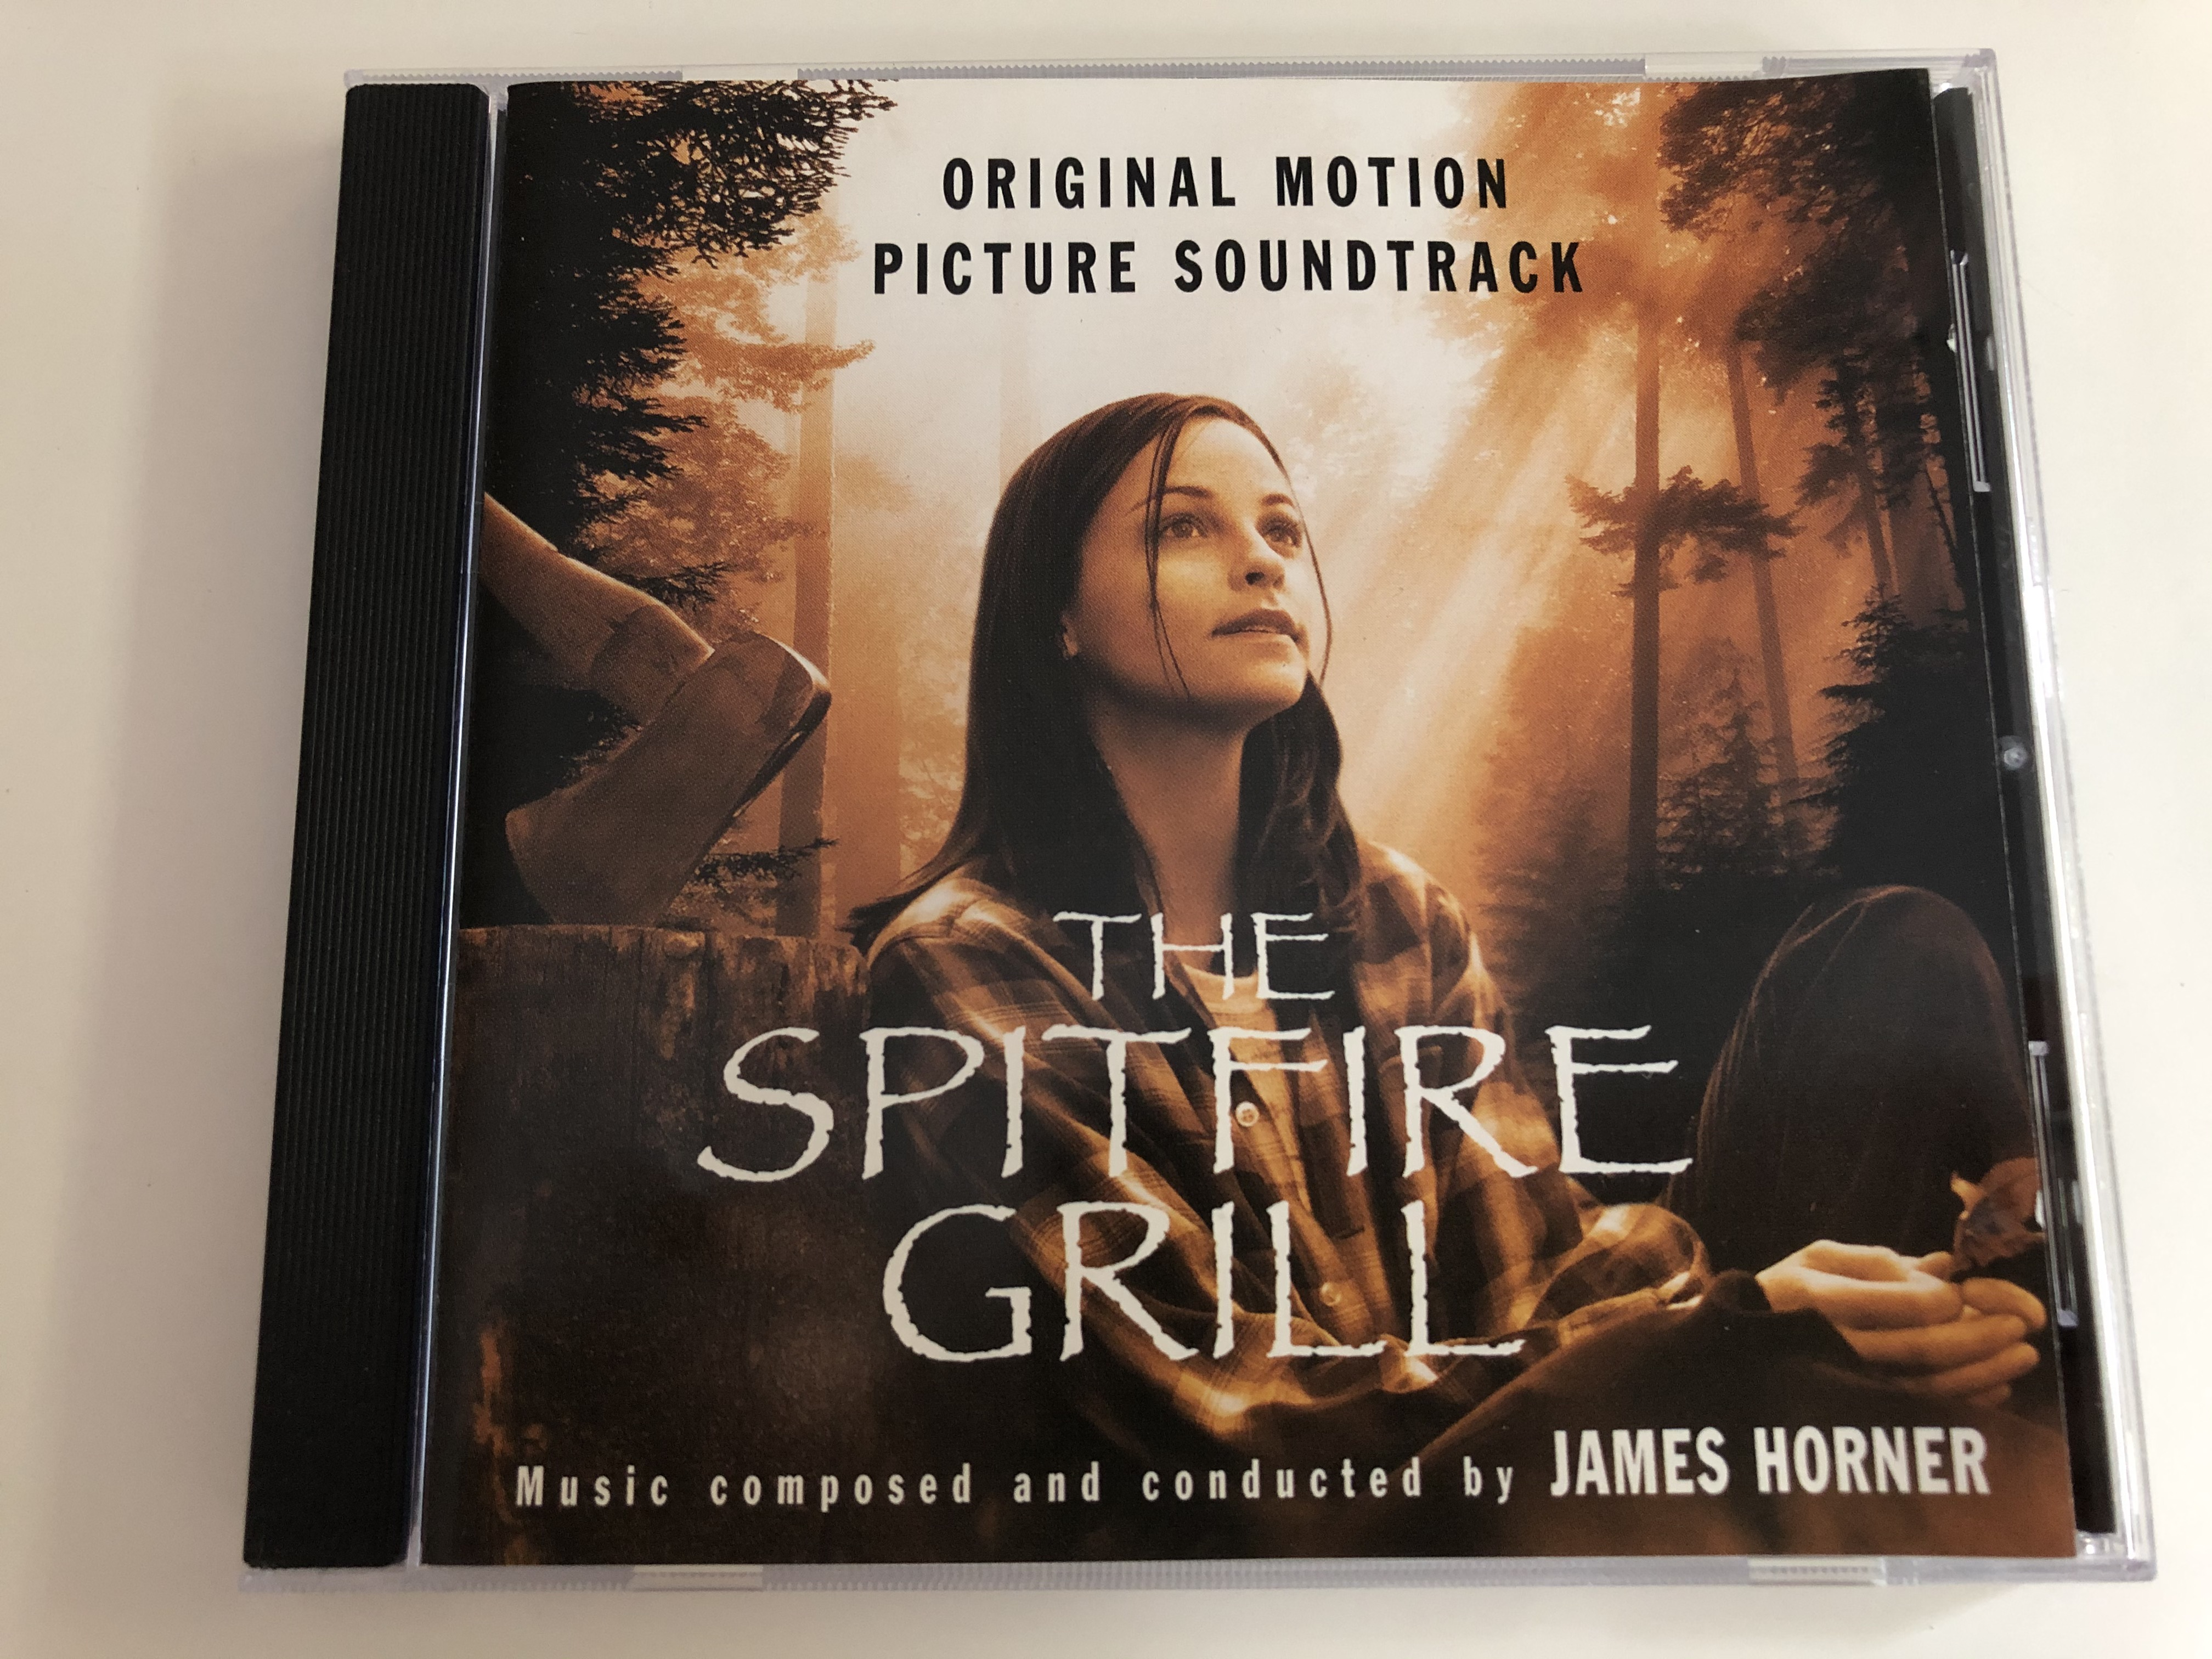 original-motion-picture-soundtrack-the-spitfire-grill-music-composed-and-conducted-by-james-horner-sony-classical-audio-cd-1996-sk-62776-1-.jpg